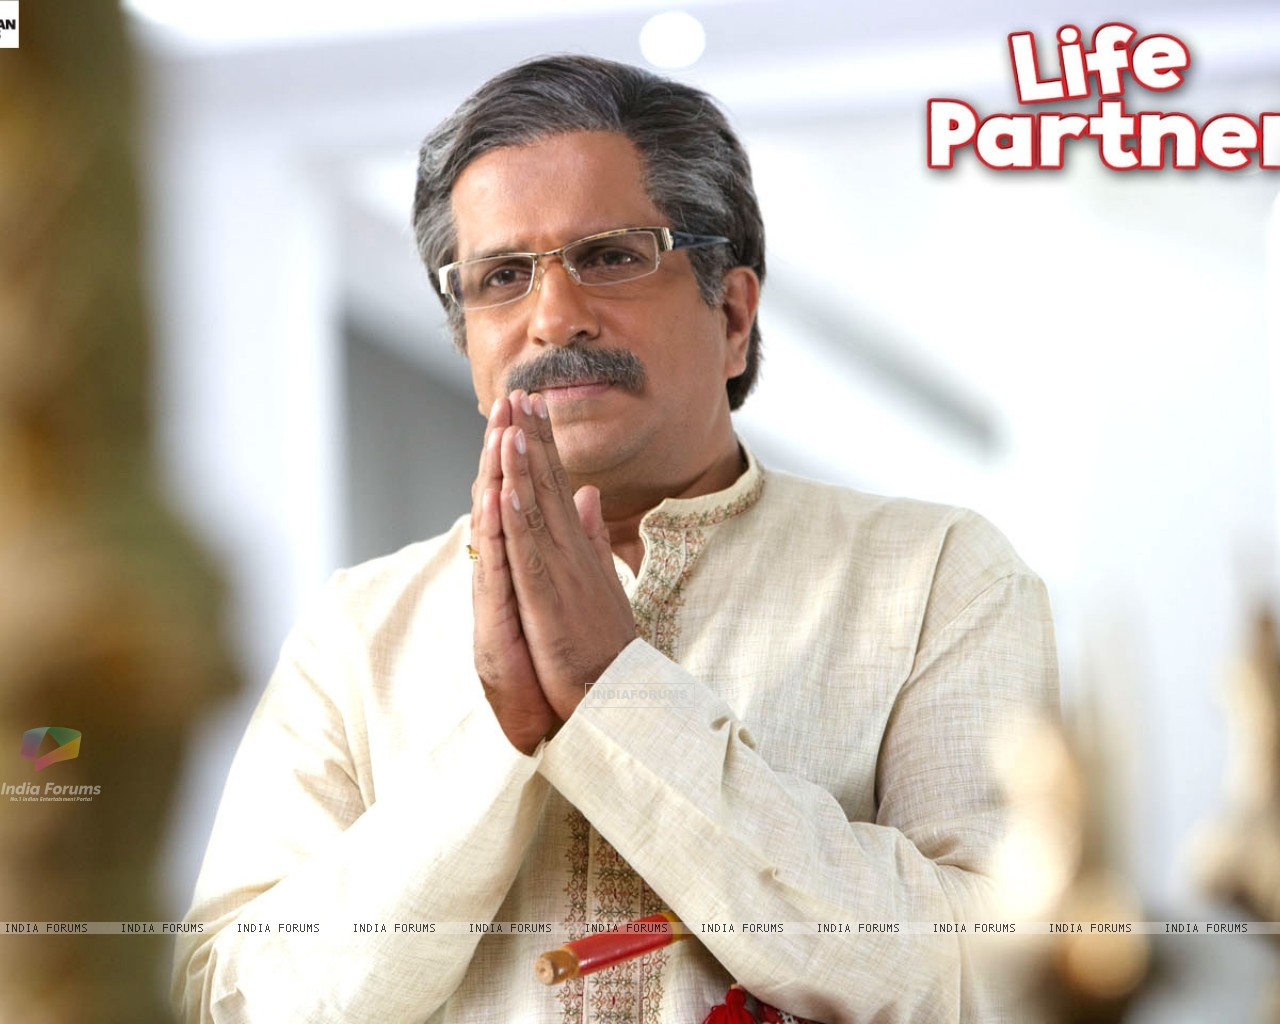 Wallpaper of Darshan Jariwala from Life Partner movie (31444) size:1280x1024